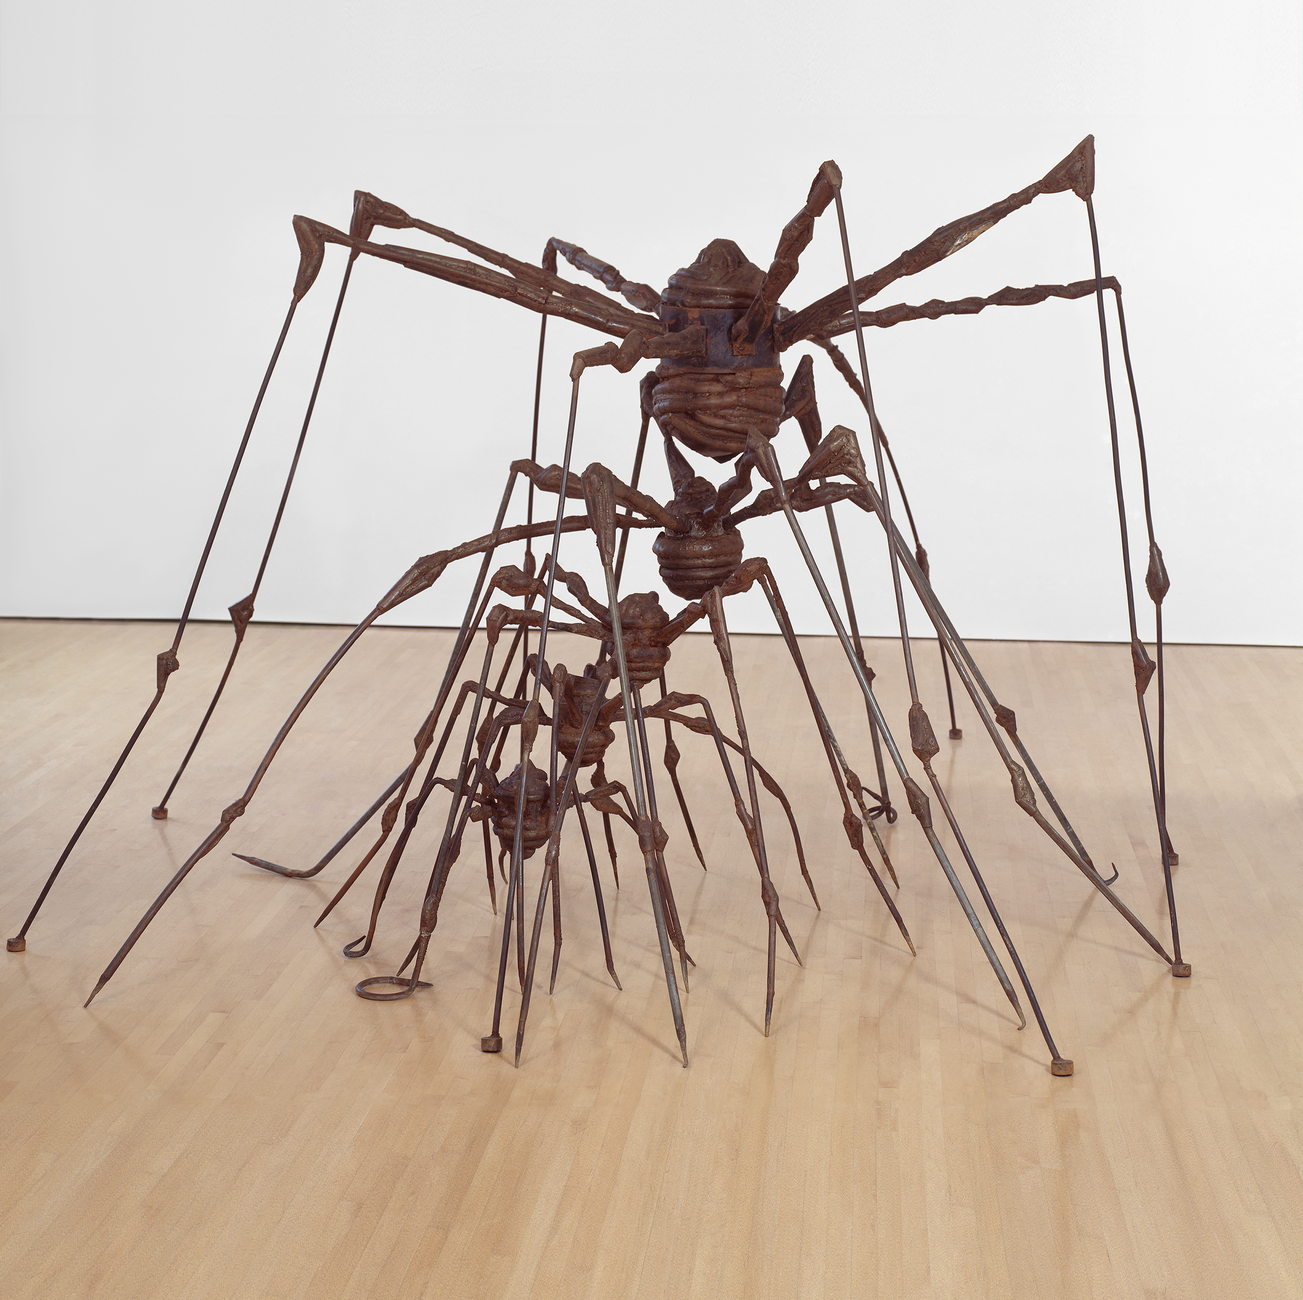 Louise Bourgeois Spiders 183 Sfmoma